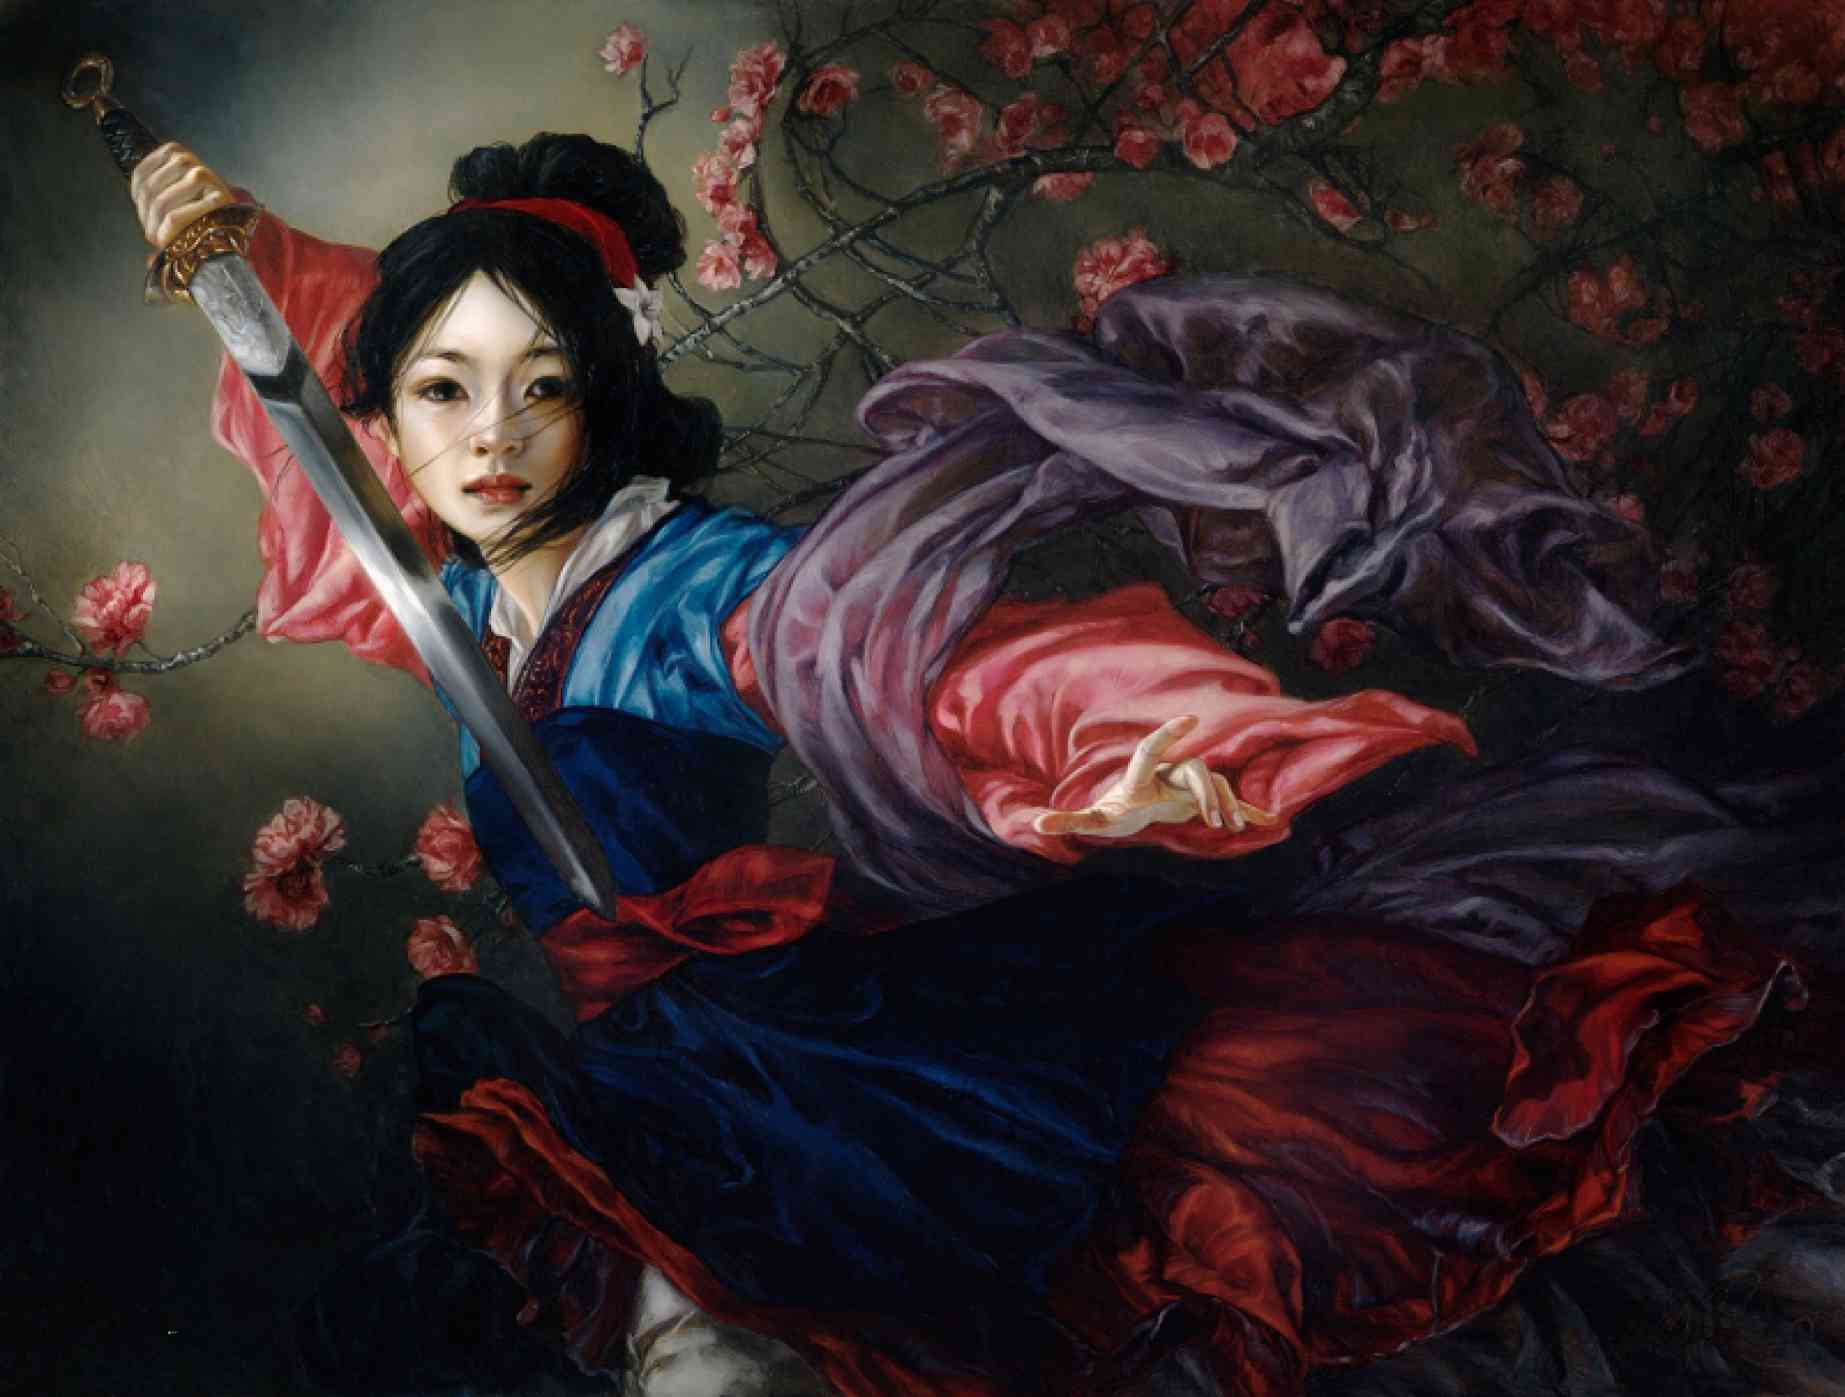 mulan realistic disney princess painting heather theurer